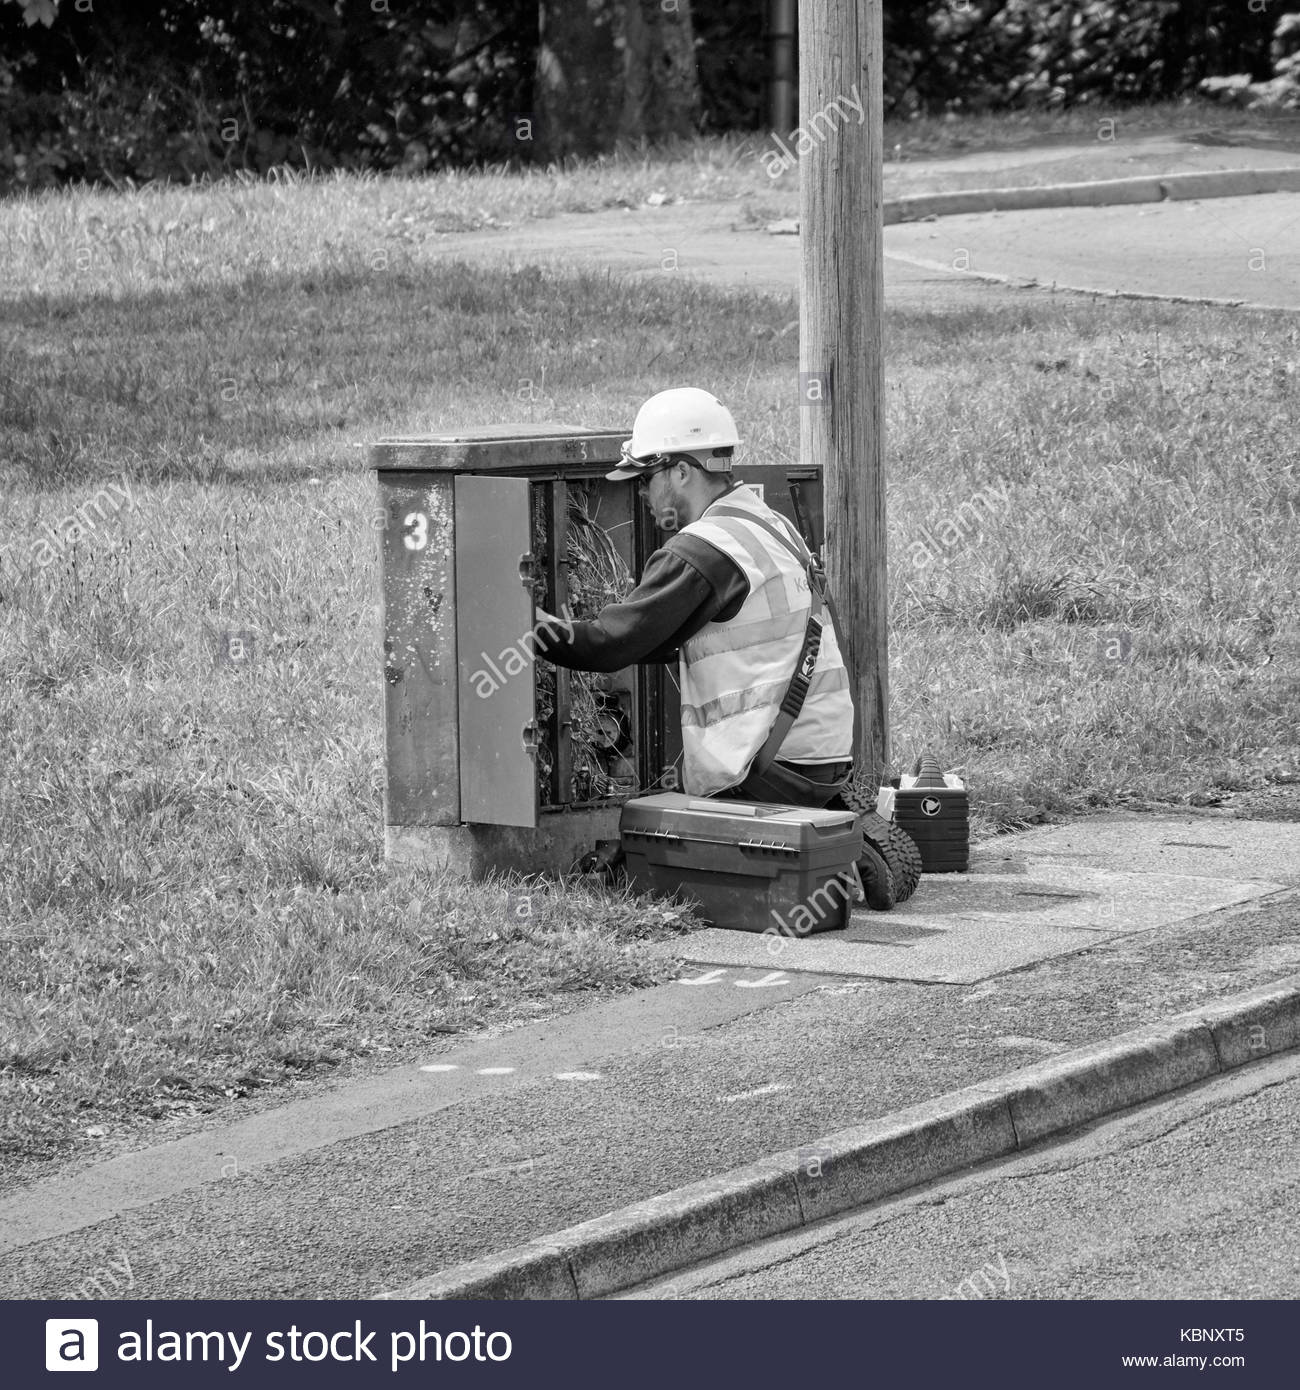 an engineer on his knees repairing or modifying a telephone junction box in baglan south wales uk - Stock Image